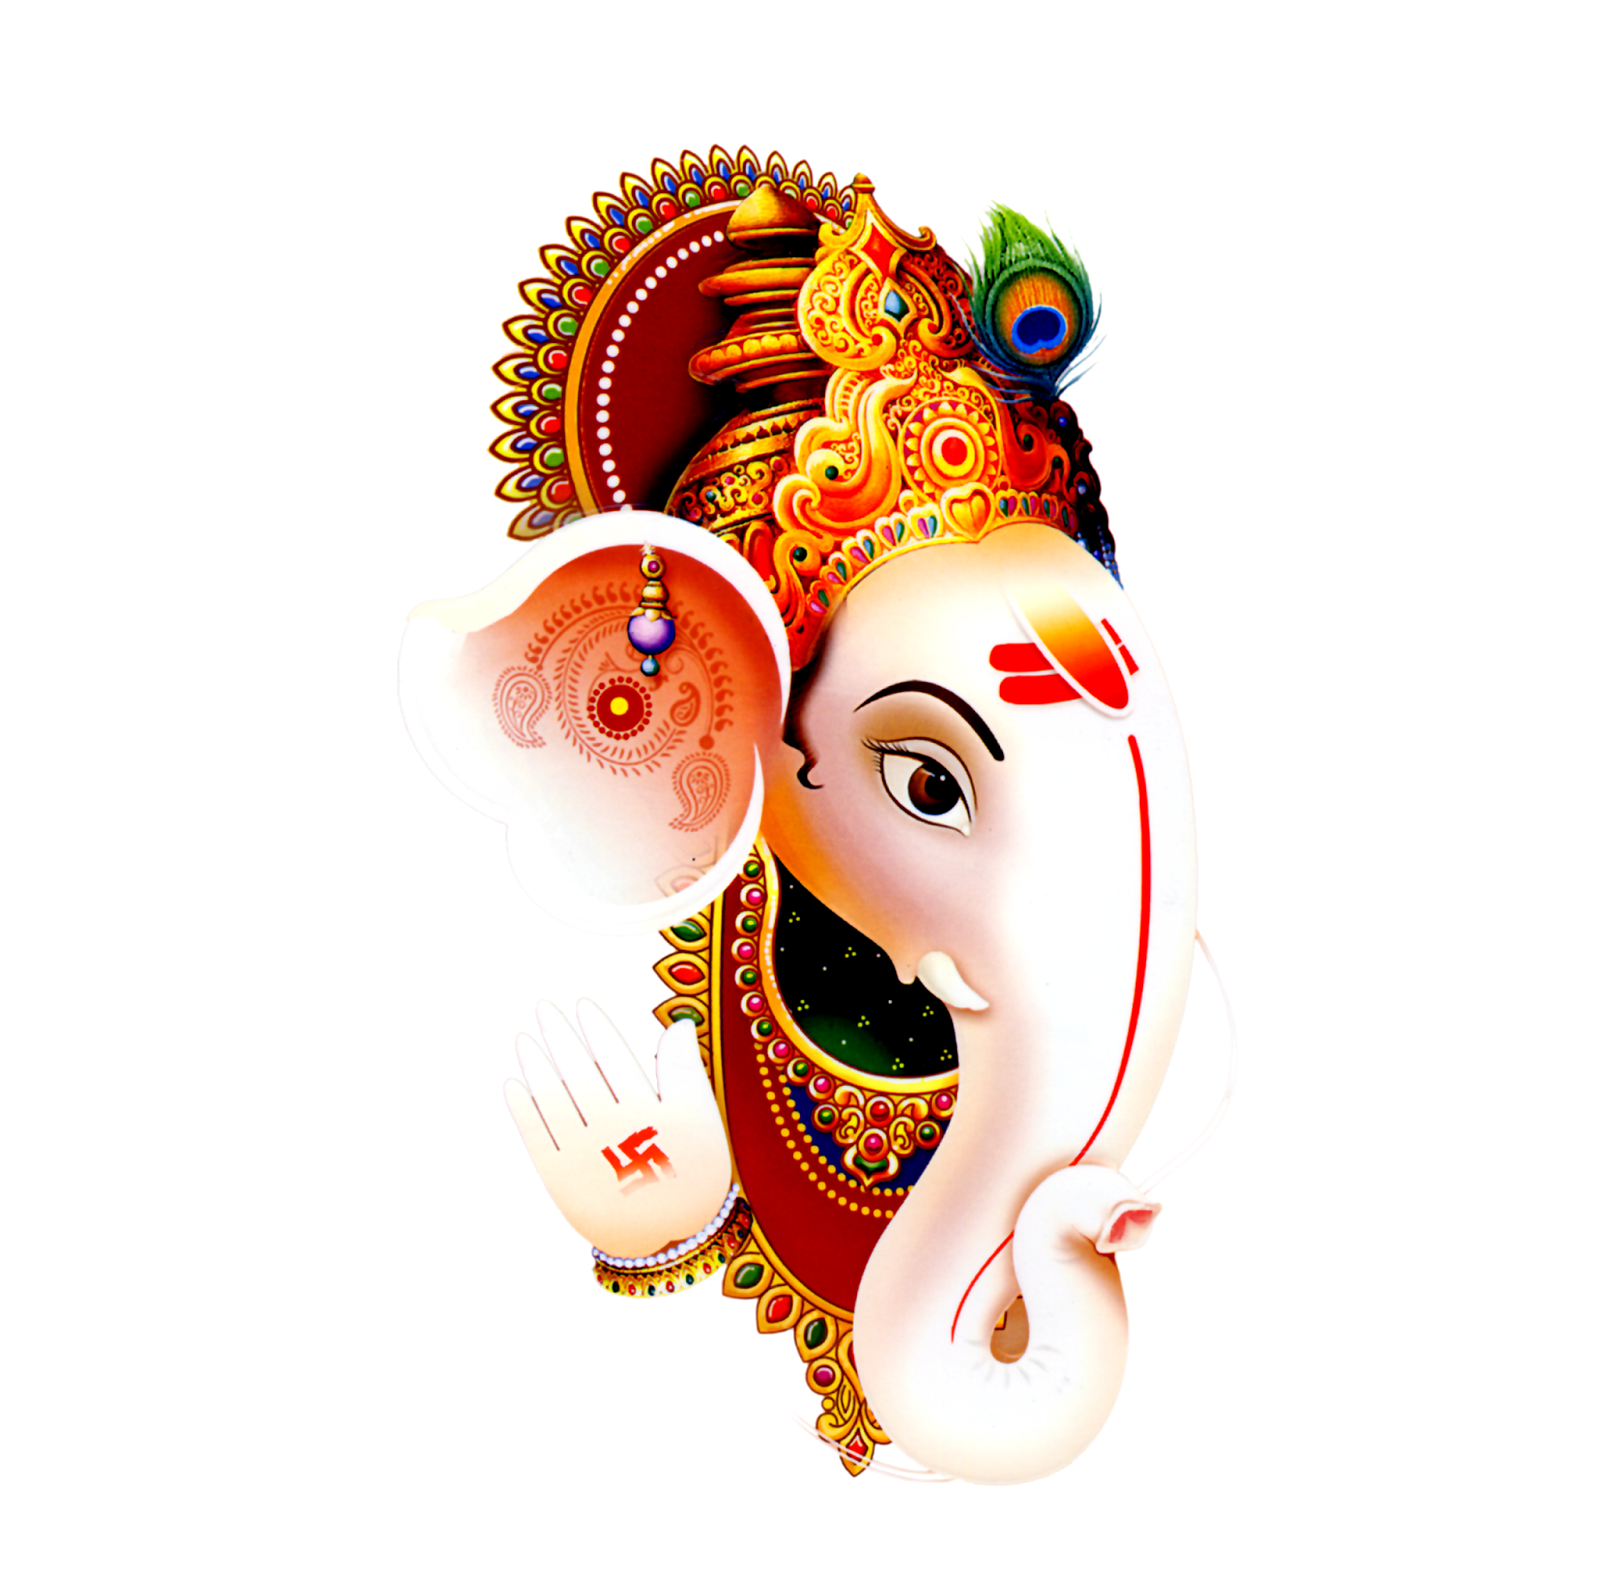 3d Ganesh Wallpapers Free Download For Pc Pngforall Ganesh Logo Png Ganesh Png Images For Wedding